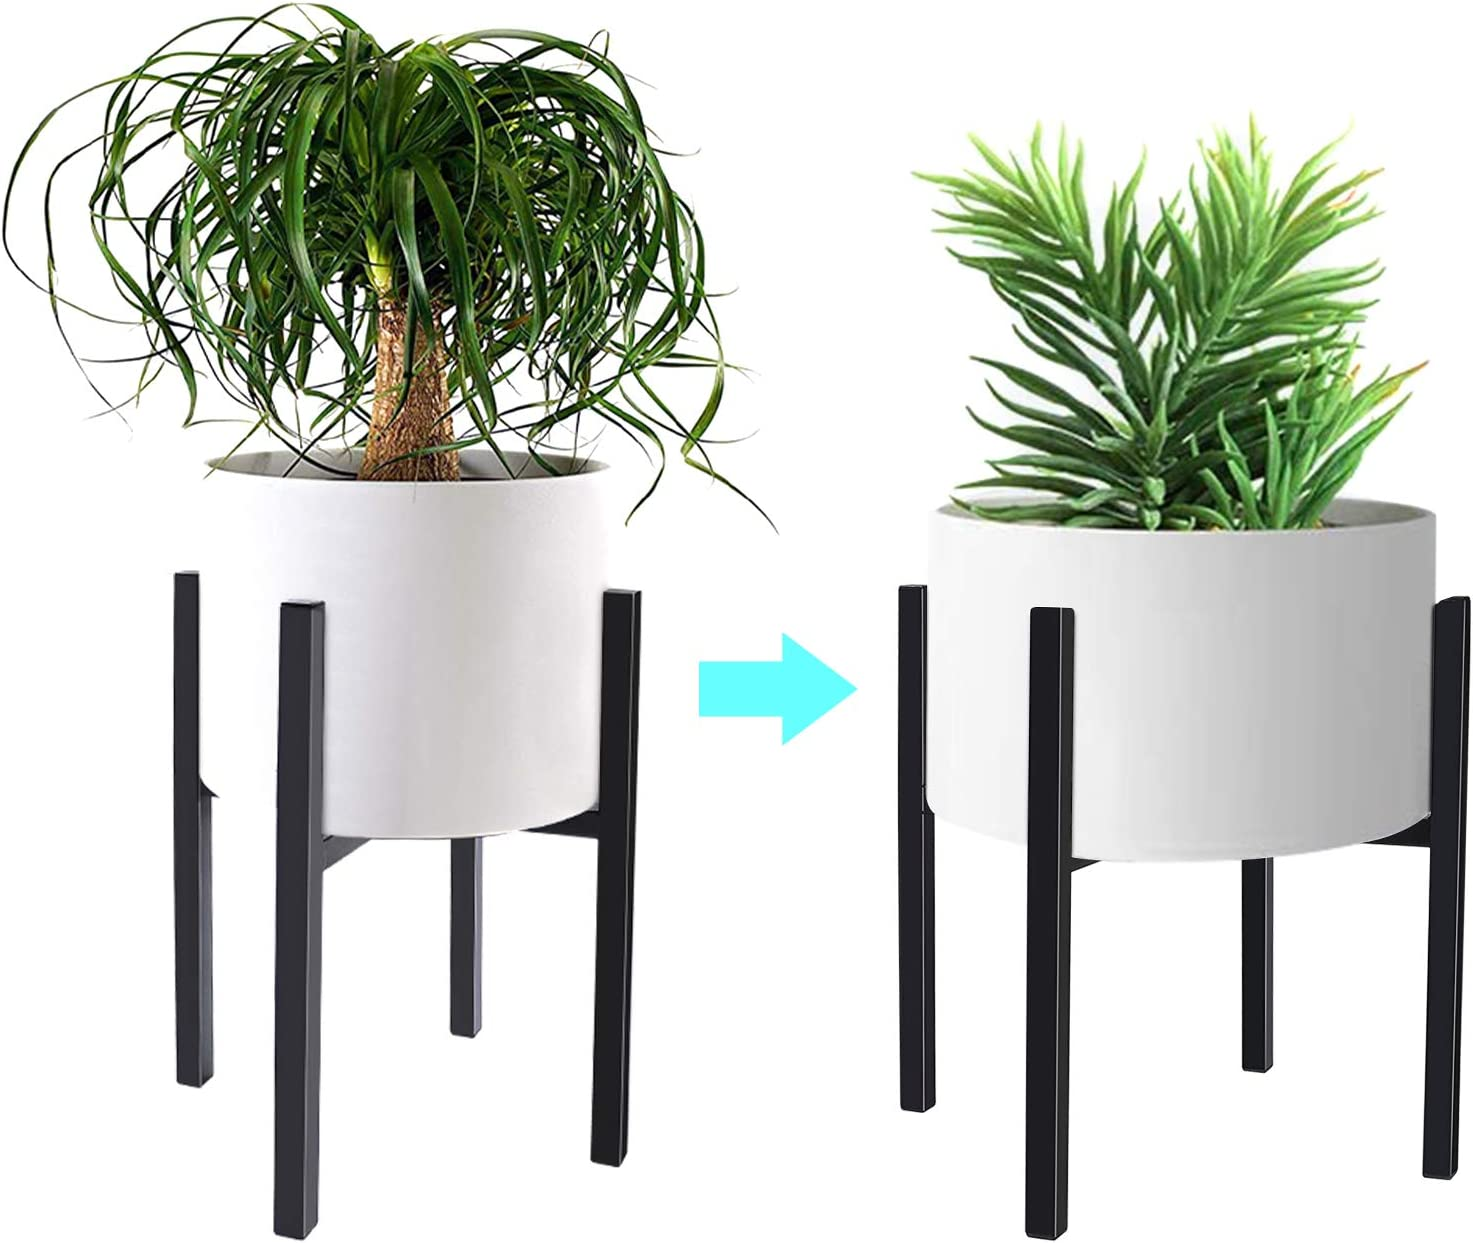 Adjustable Plant Stand Metal Flower Holder, Mid Century Stable & Stylish Display Plant Pot Stand for Indoor & Outdoor, Fits 8 to 14 Inch Pots.